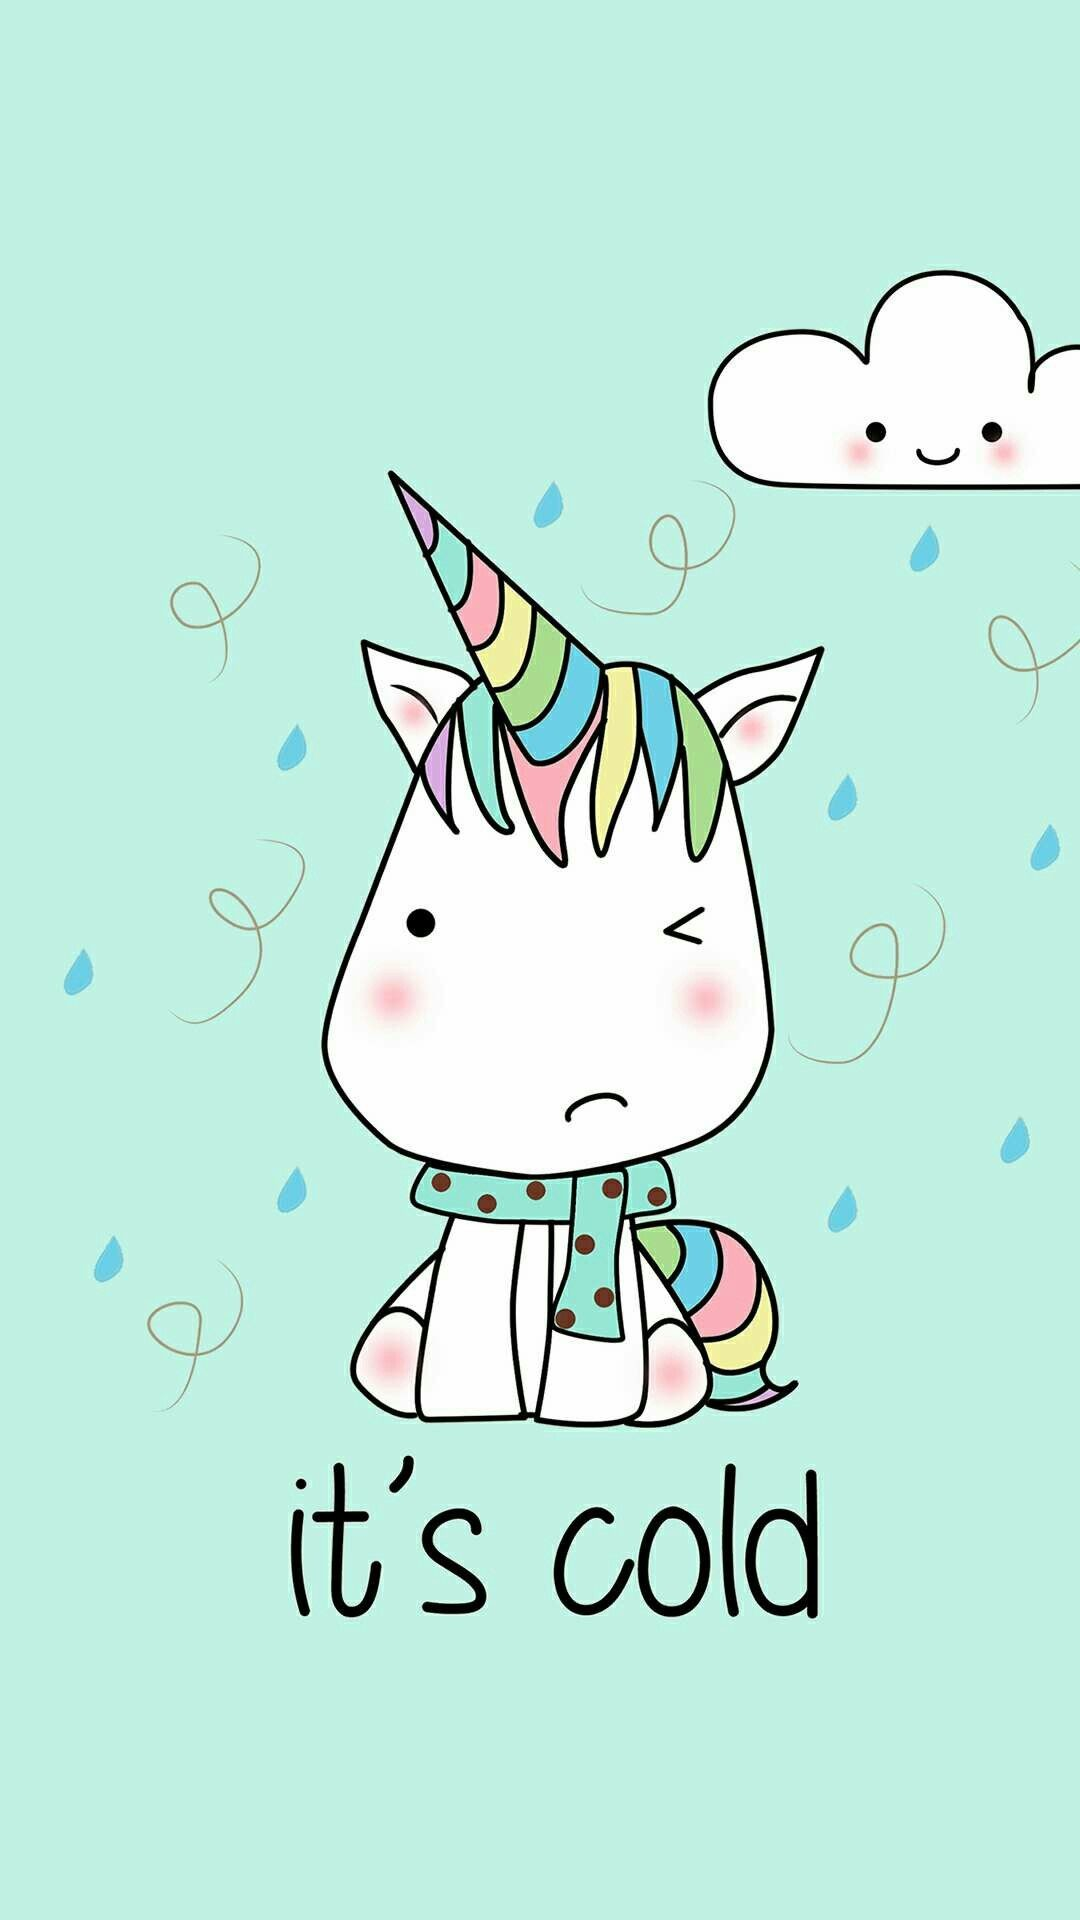 Res: 1080x1920, Phone Backgrounds, Wallpaper Backgrounds, Iphone Wallpapers, Hd Wallpaper  Girly, Kawaii Wallpaper, Cute Unicorn, Mobile Wallpaper, Itunes, Baby  Elephants